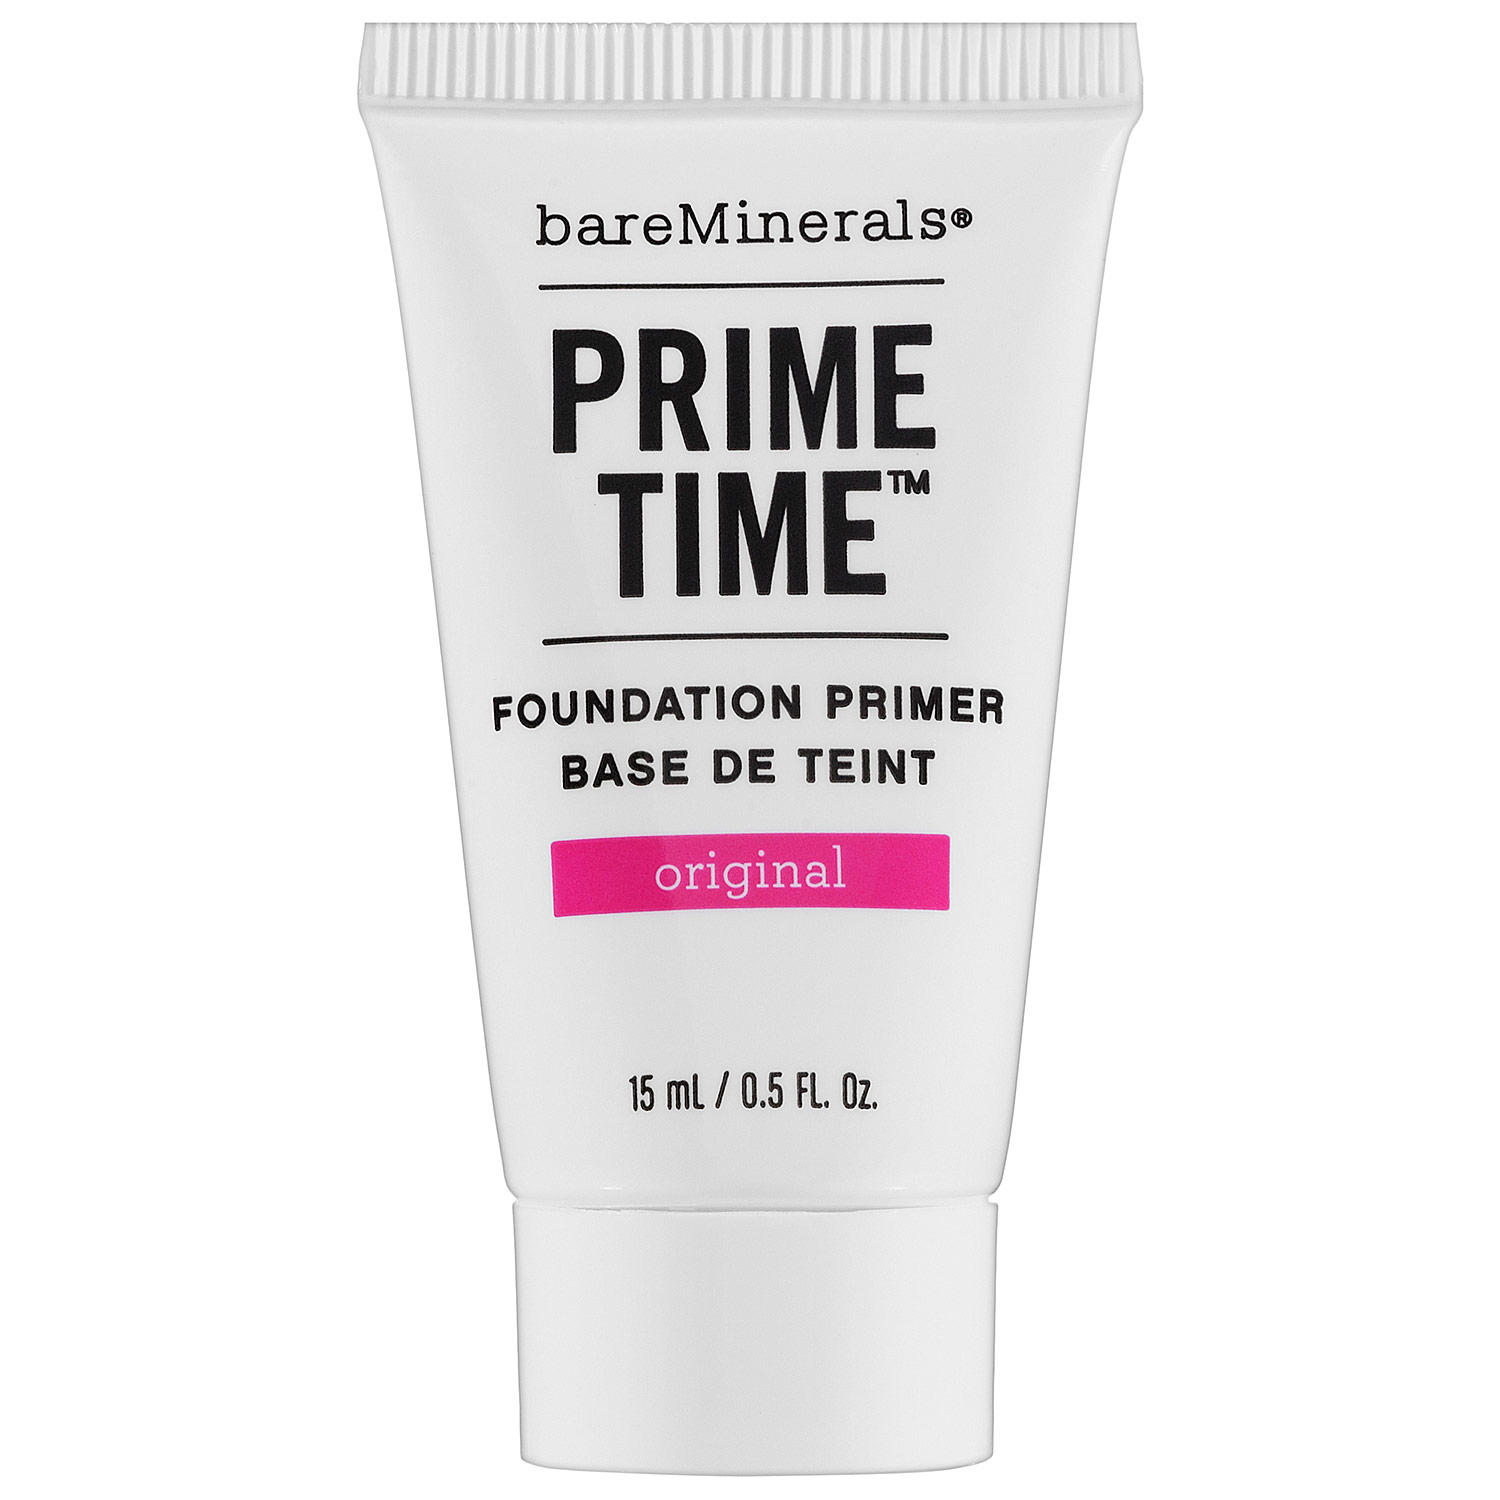 bareminerals prime time before and after. bareminerals prime time foundation primer original mini 15ml bareminerals before and after d